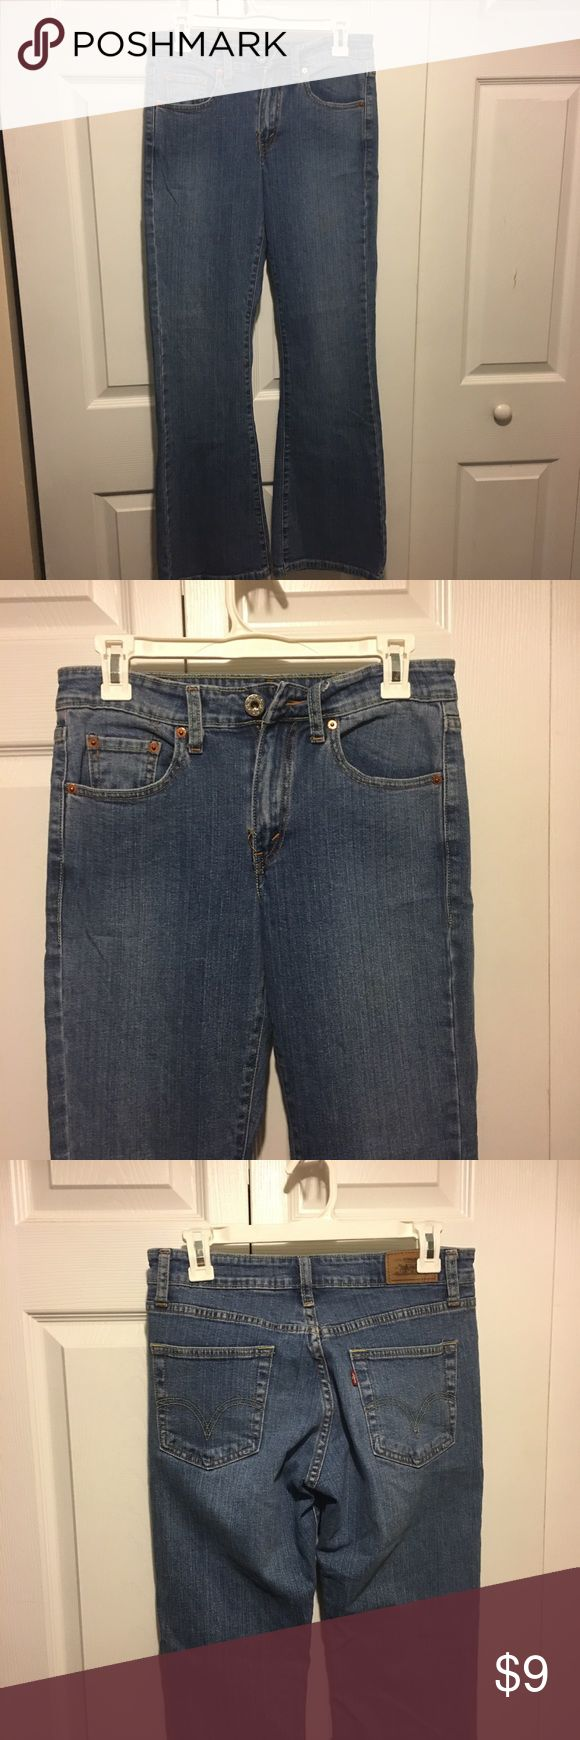 ✅2 for $15 Levi's 519 Jeans Excellent condition. No tears, stains or marks. Combine with any item with a ✅ for a $15 bundle or add three more items for 30% Off Bundles. Levi's Jeans Flare & Wide Leg